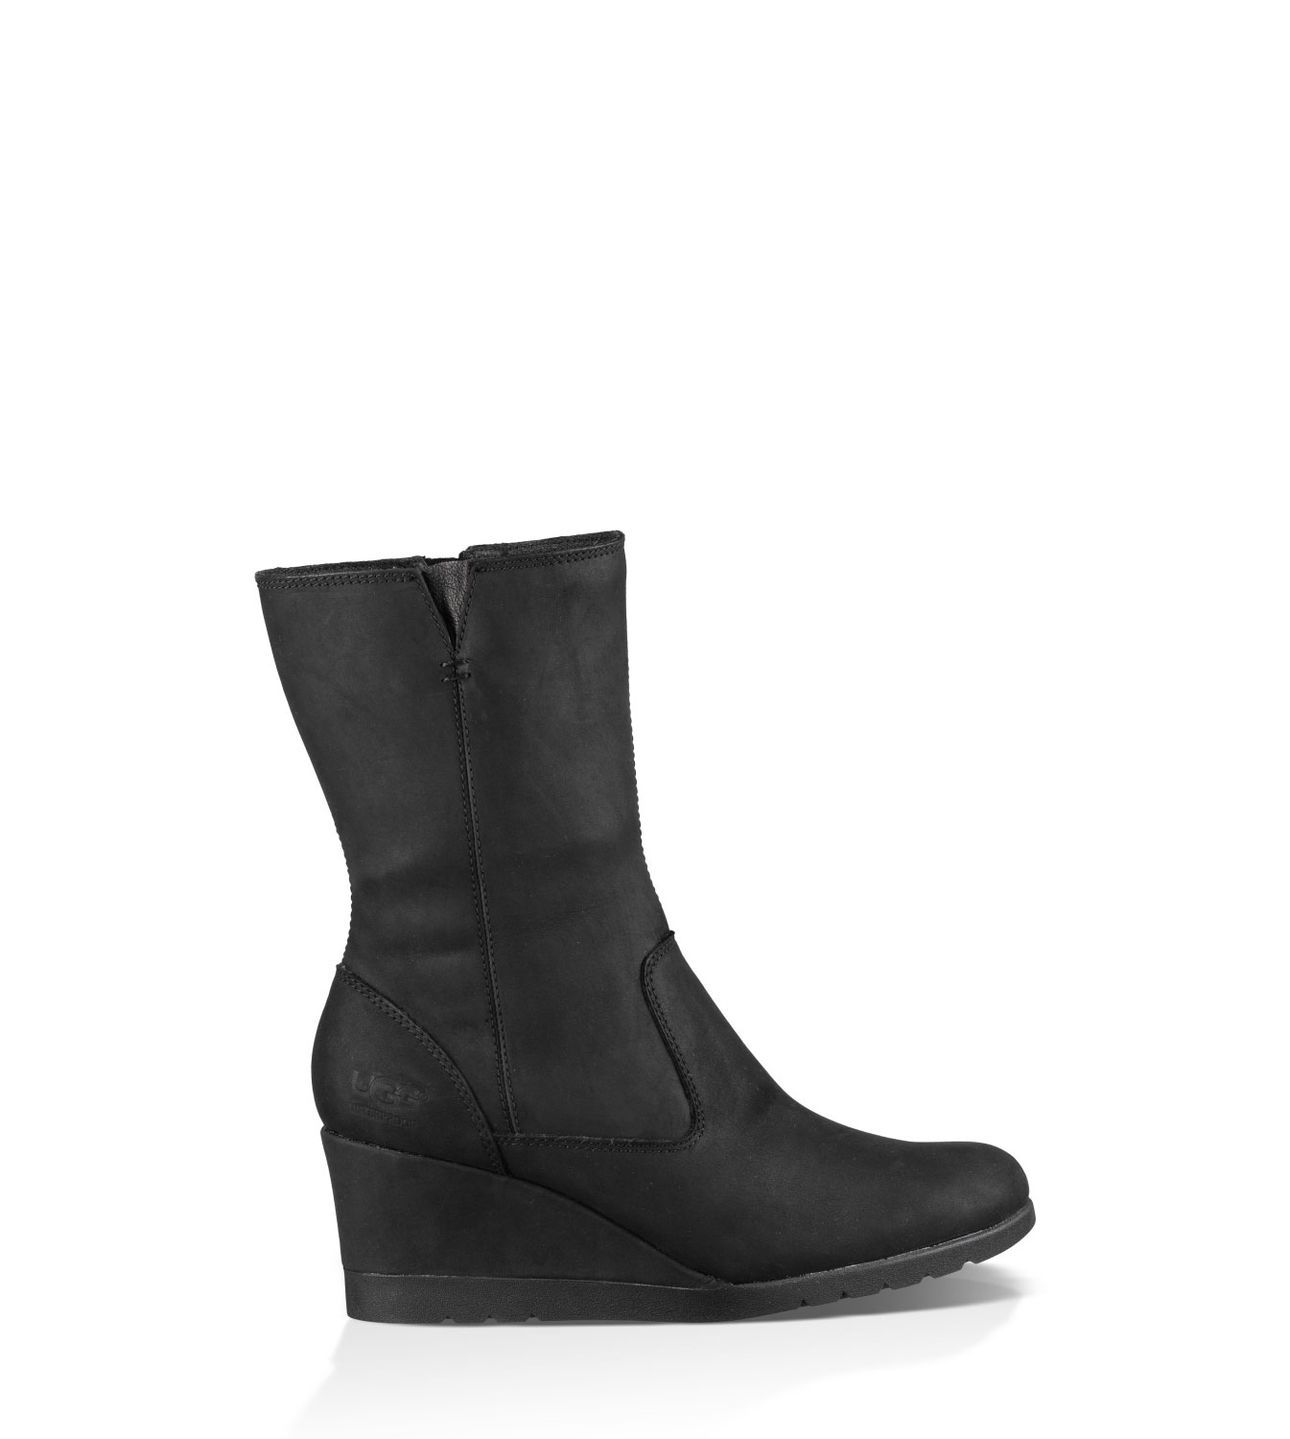 3f741b79108 Shop our collection of women's all-weather wedge boots including the ...